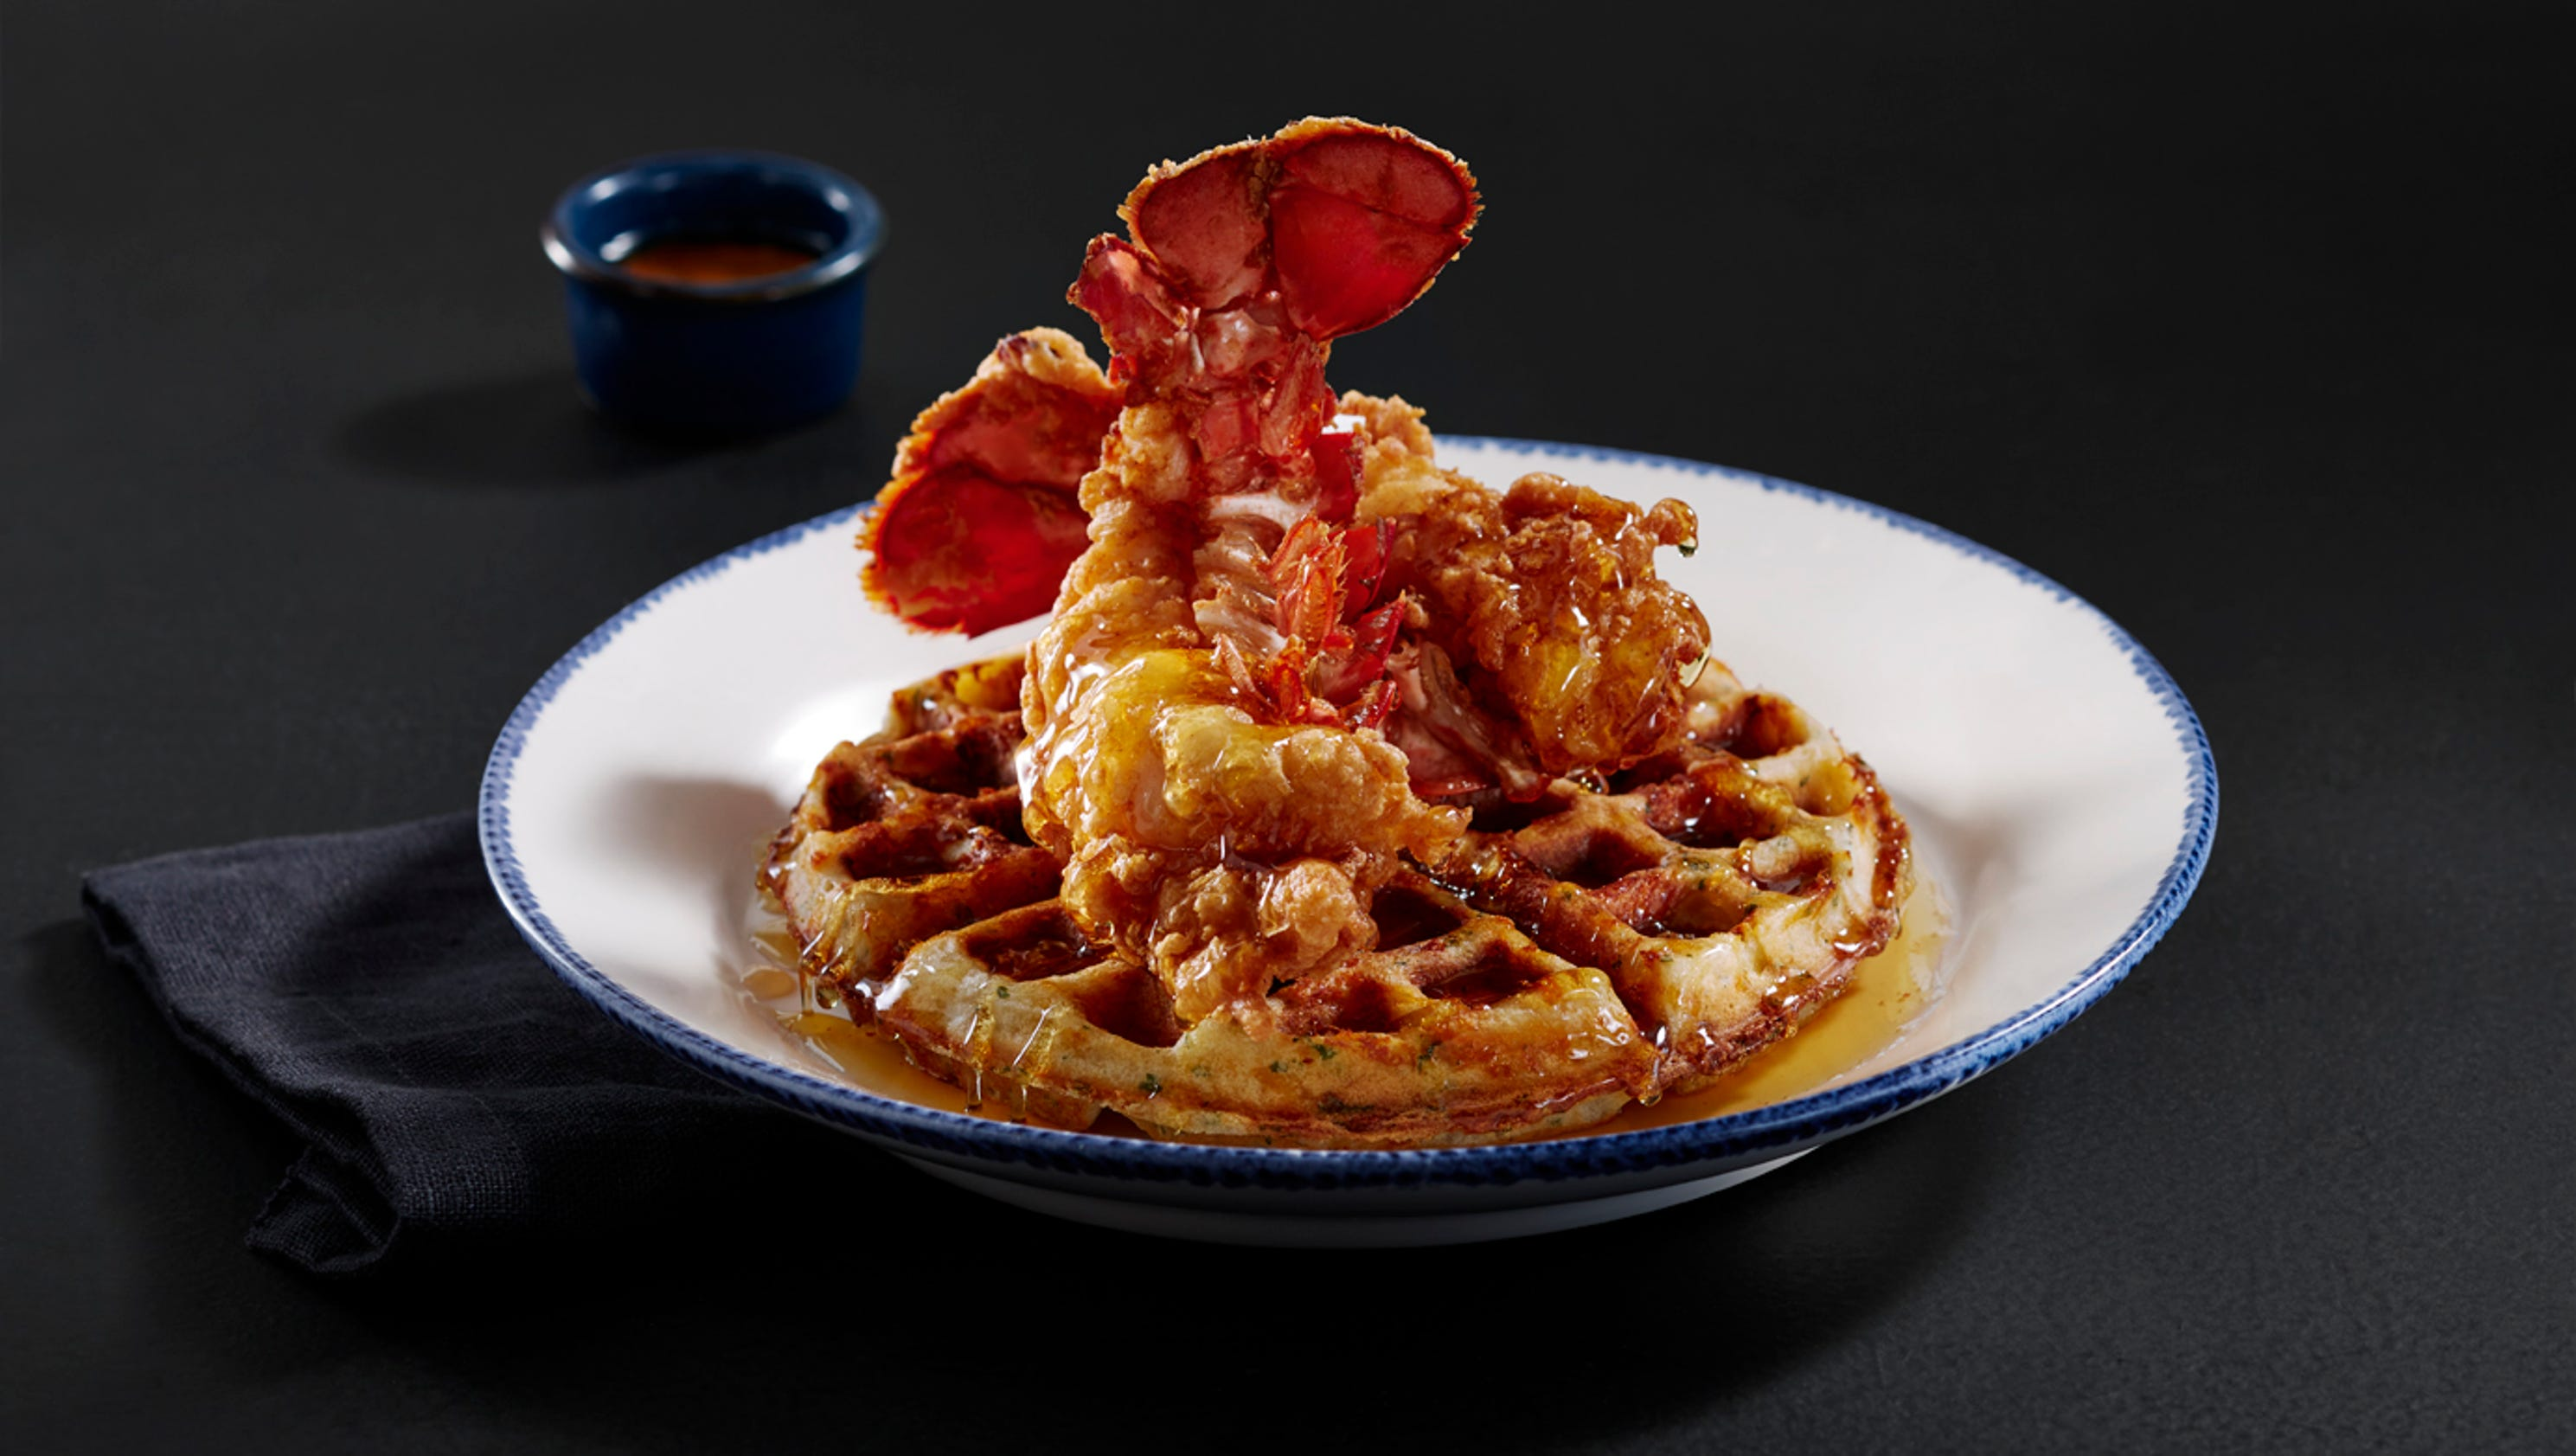 Red Lobster starts serving lobster and waffles